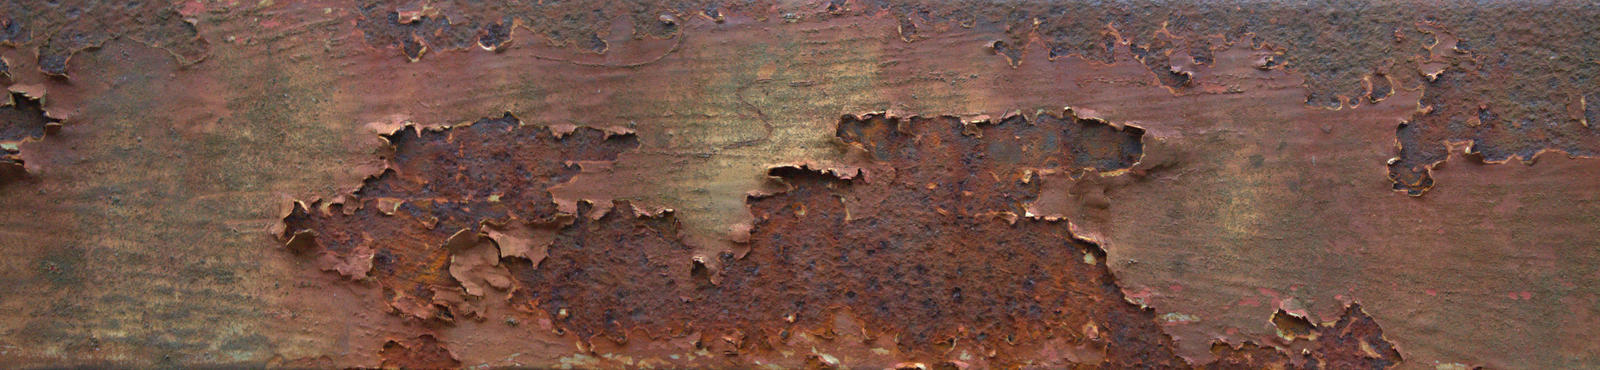 Rust on an Abandoned Bridge by wetdryvac